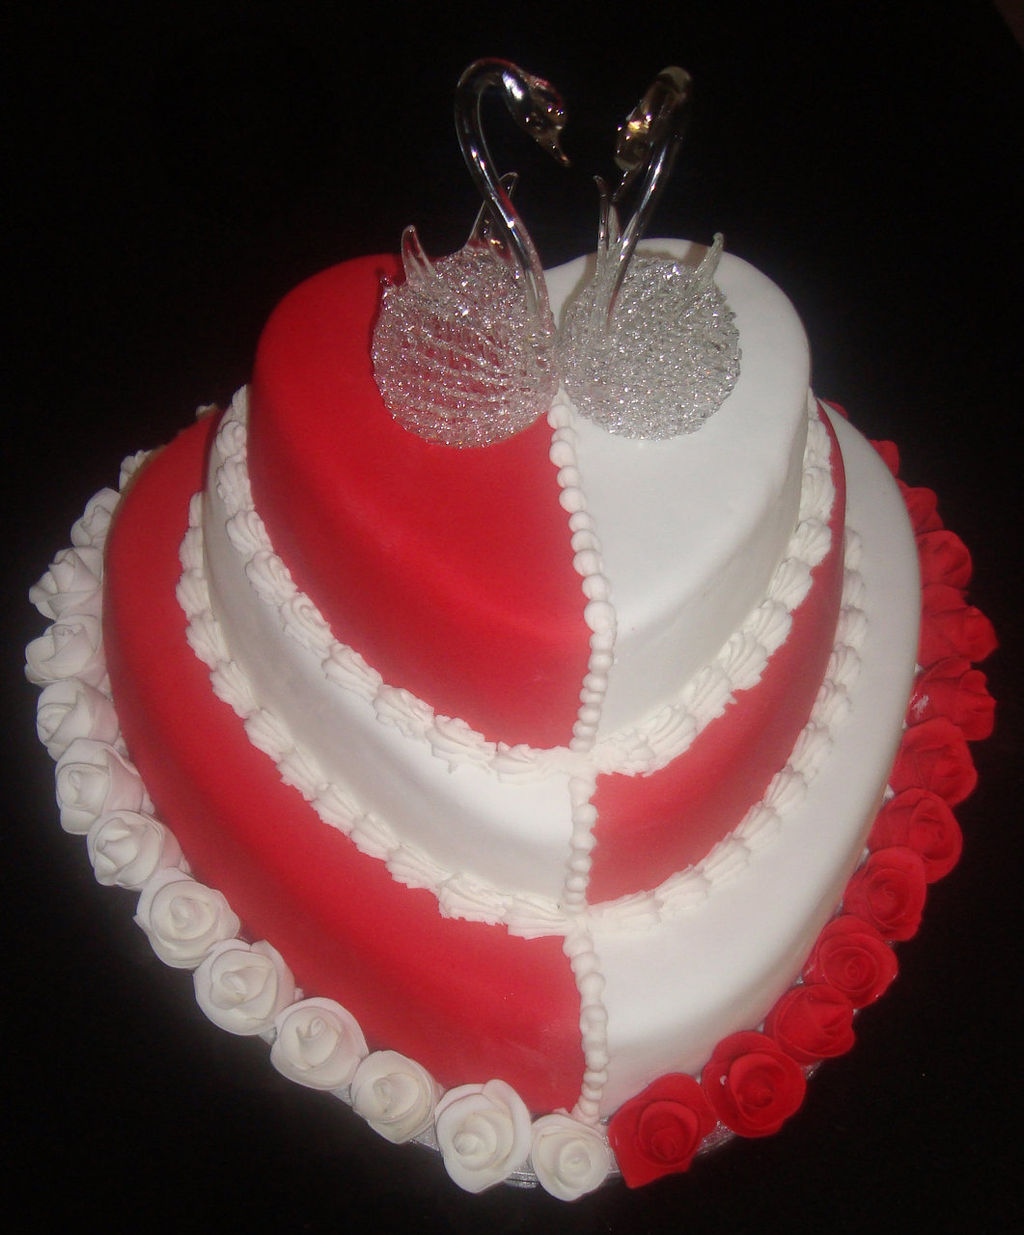 Wix Artistic Cake Designs created by chef aslam based